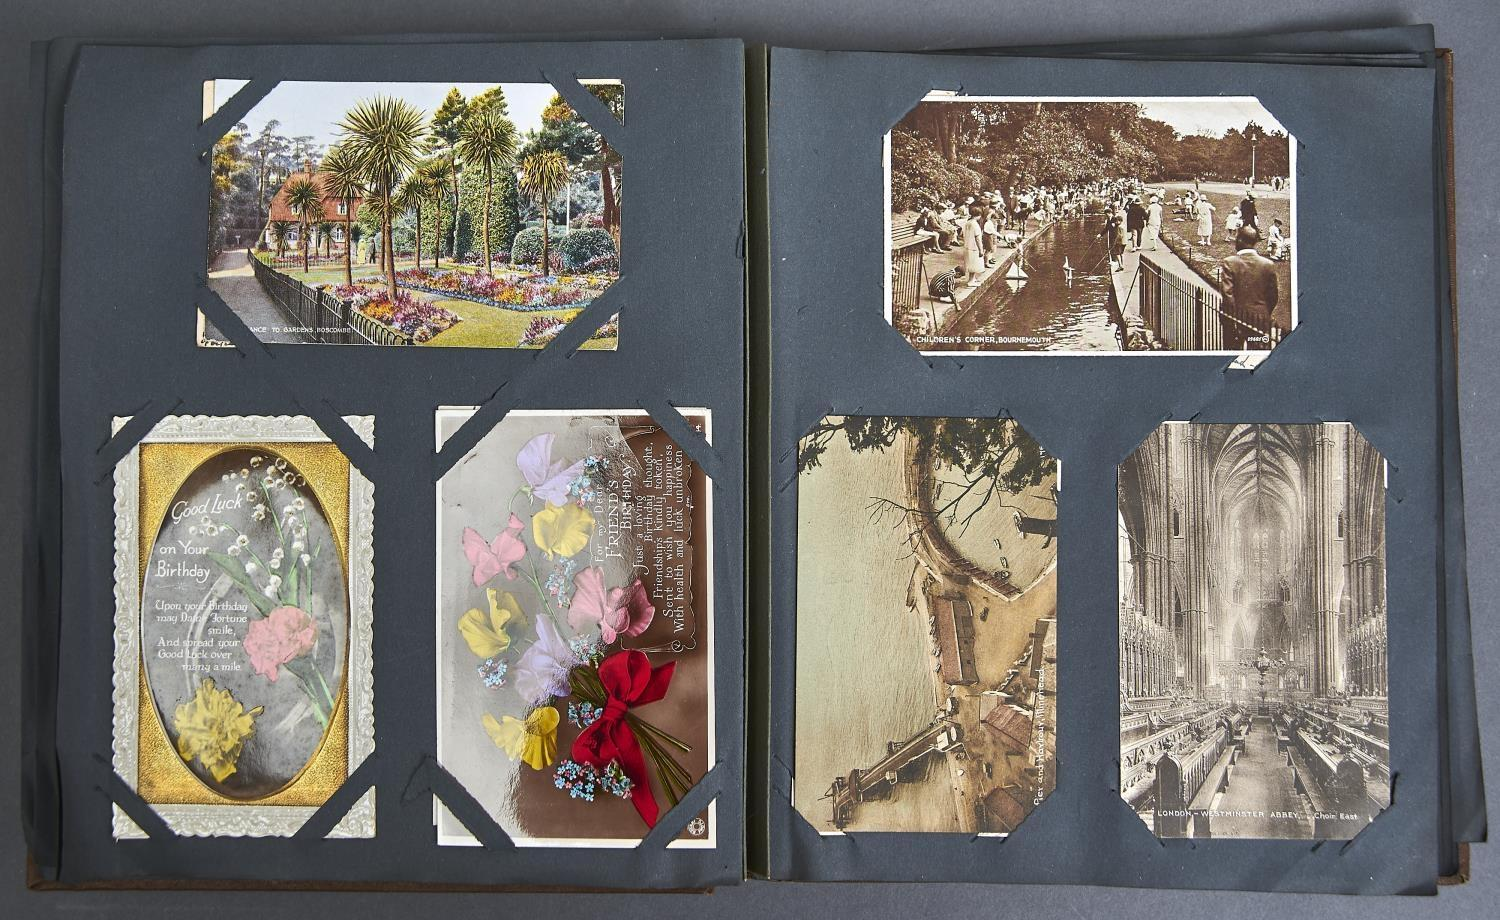 TWO ALBUMS OF POSTCARDS, UK, MAINLY EARLY 20TH C, TO INCLUDE BOURNEMOUTH, WHITLEY BAY, BLACKPOOL, - Image 2 of 2